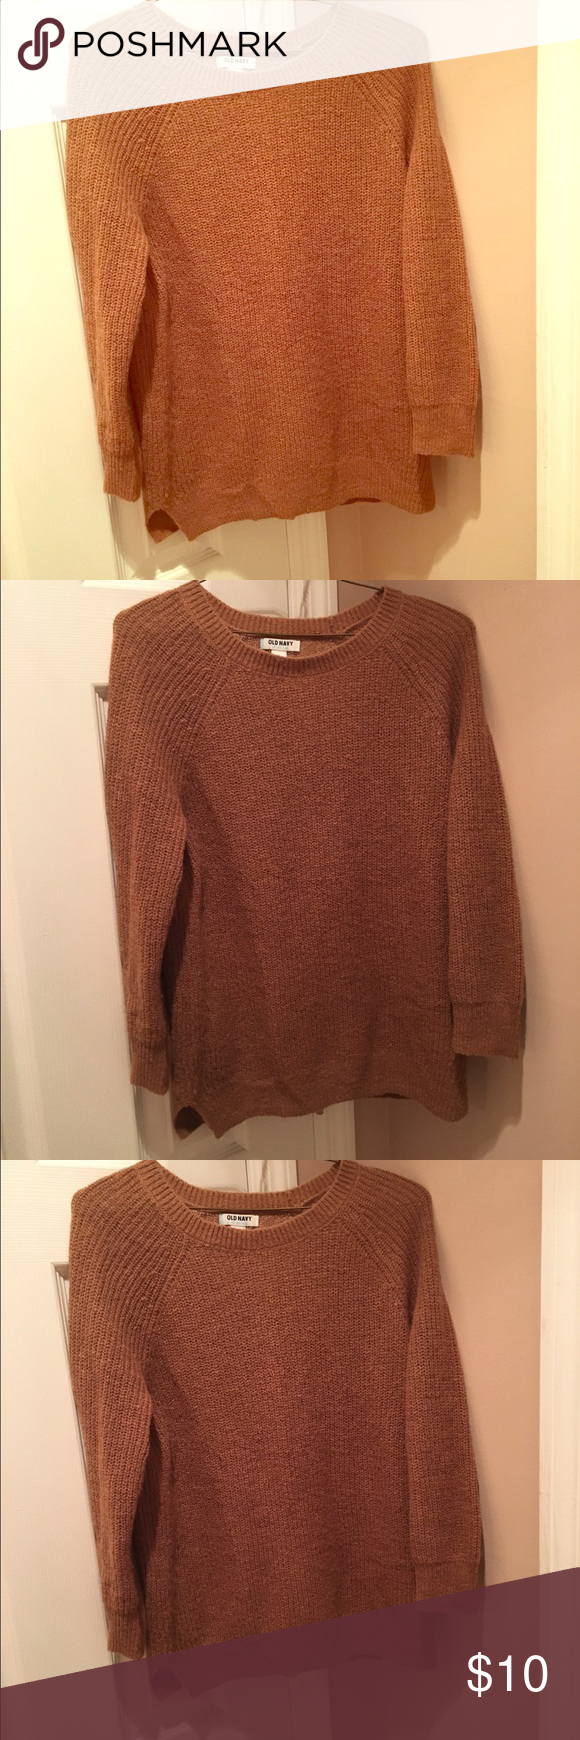 Old Navy Tan Sweater.. Mid Length Sleeves! $10 Old Navy Tan ...